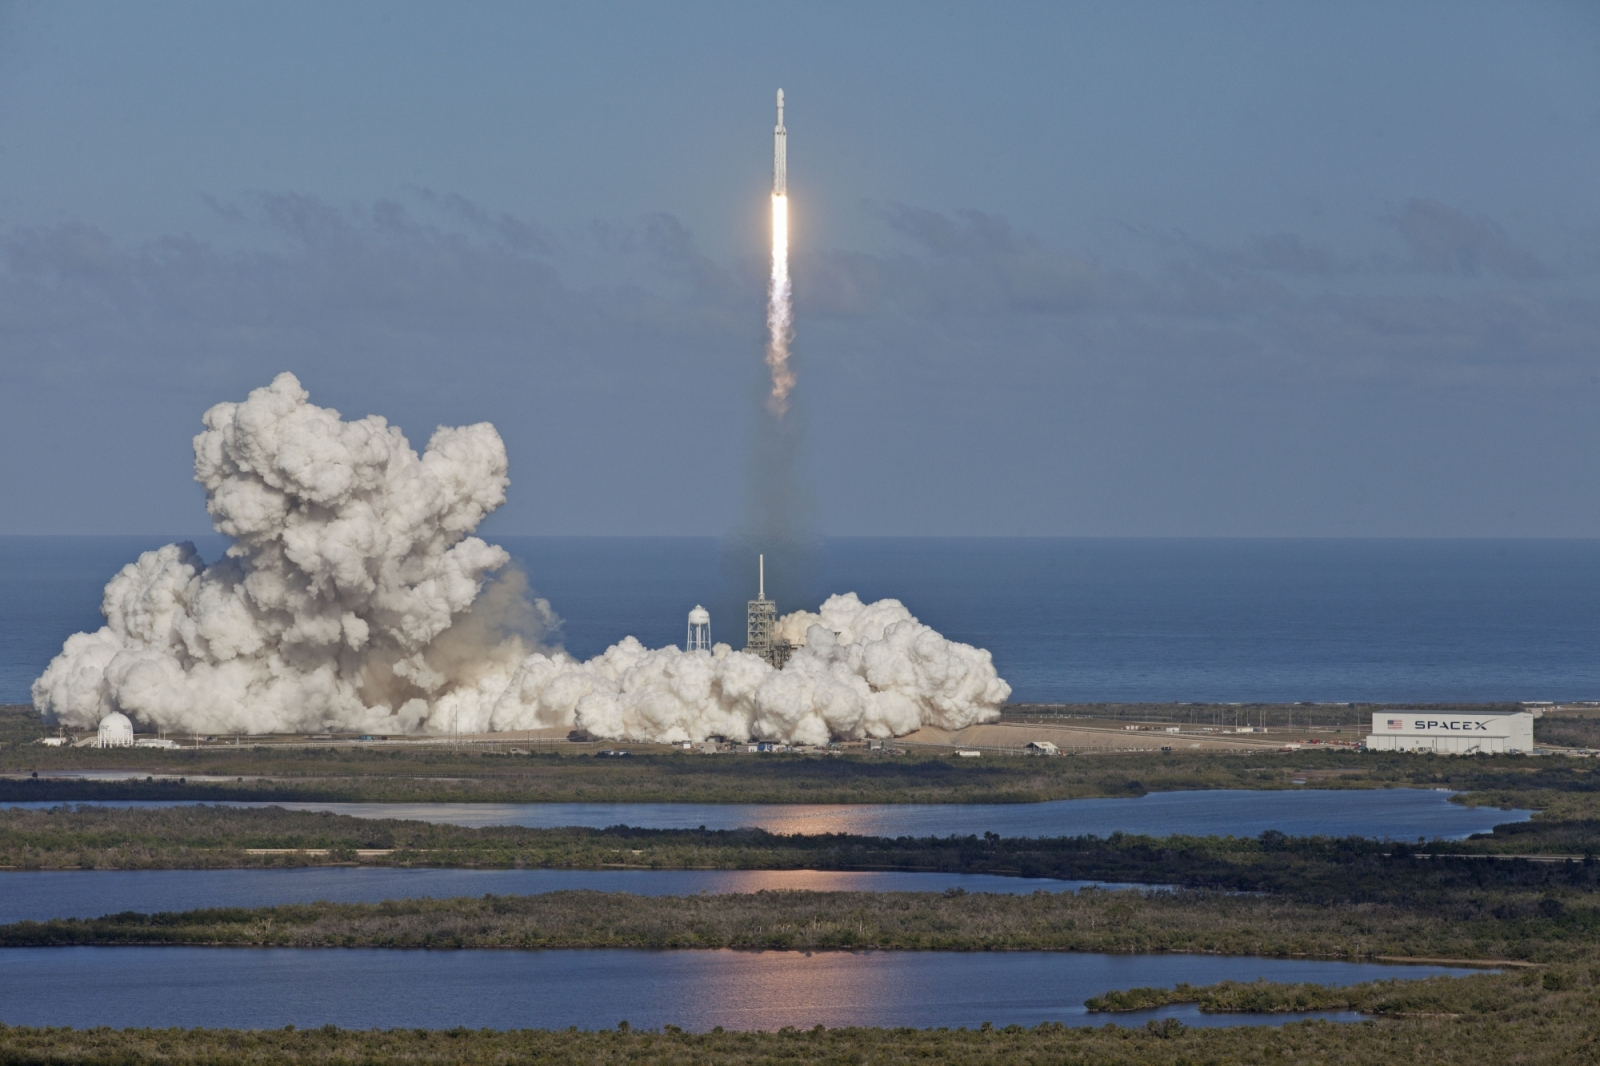 spacex 2019 schedule falcon 9 rocket launch date other details revealed. Black Bedroom Furniture Sets. Home Design Ideas